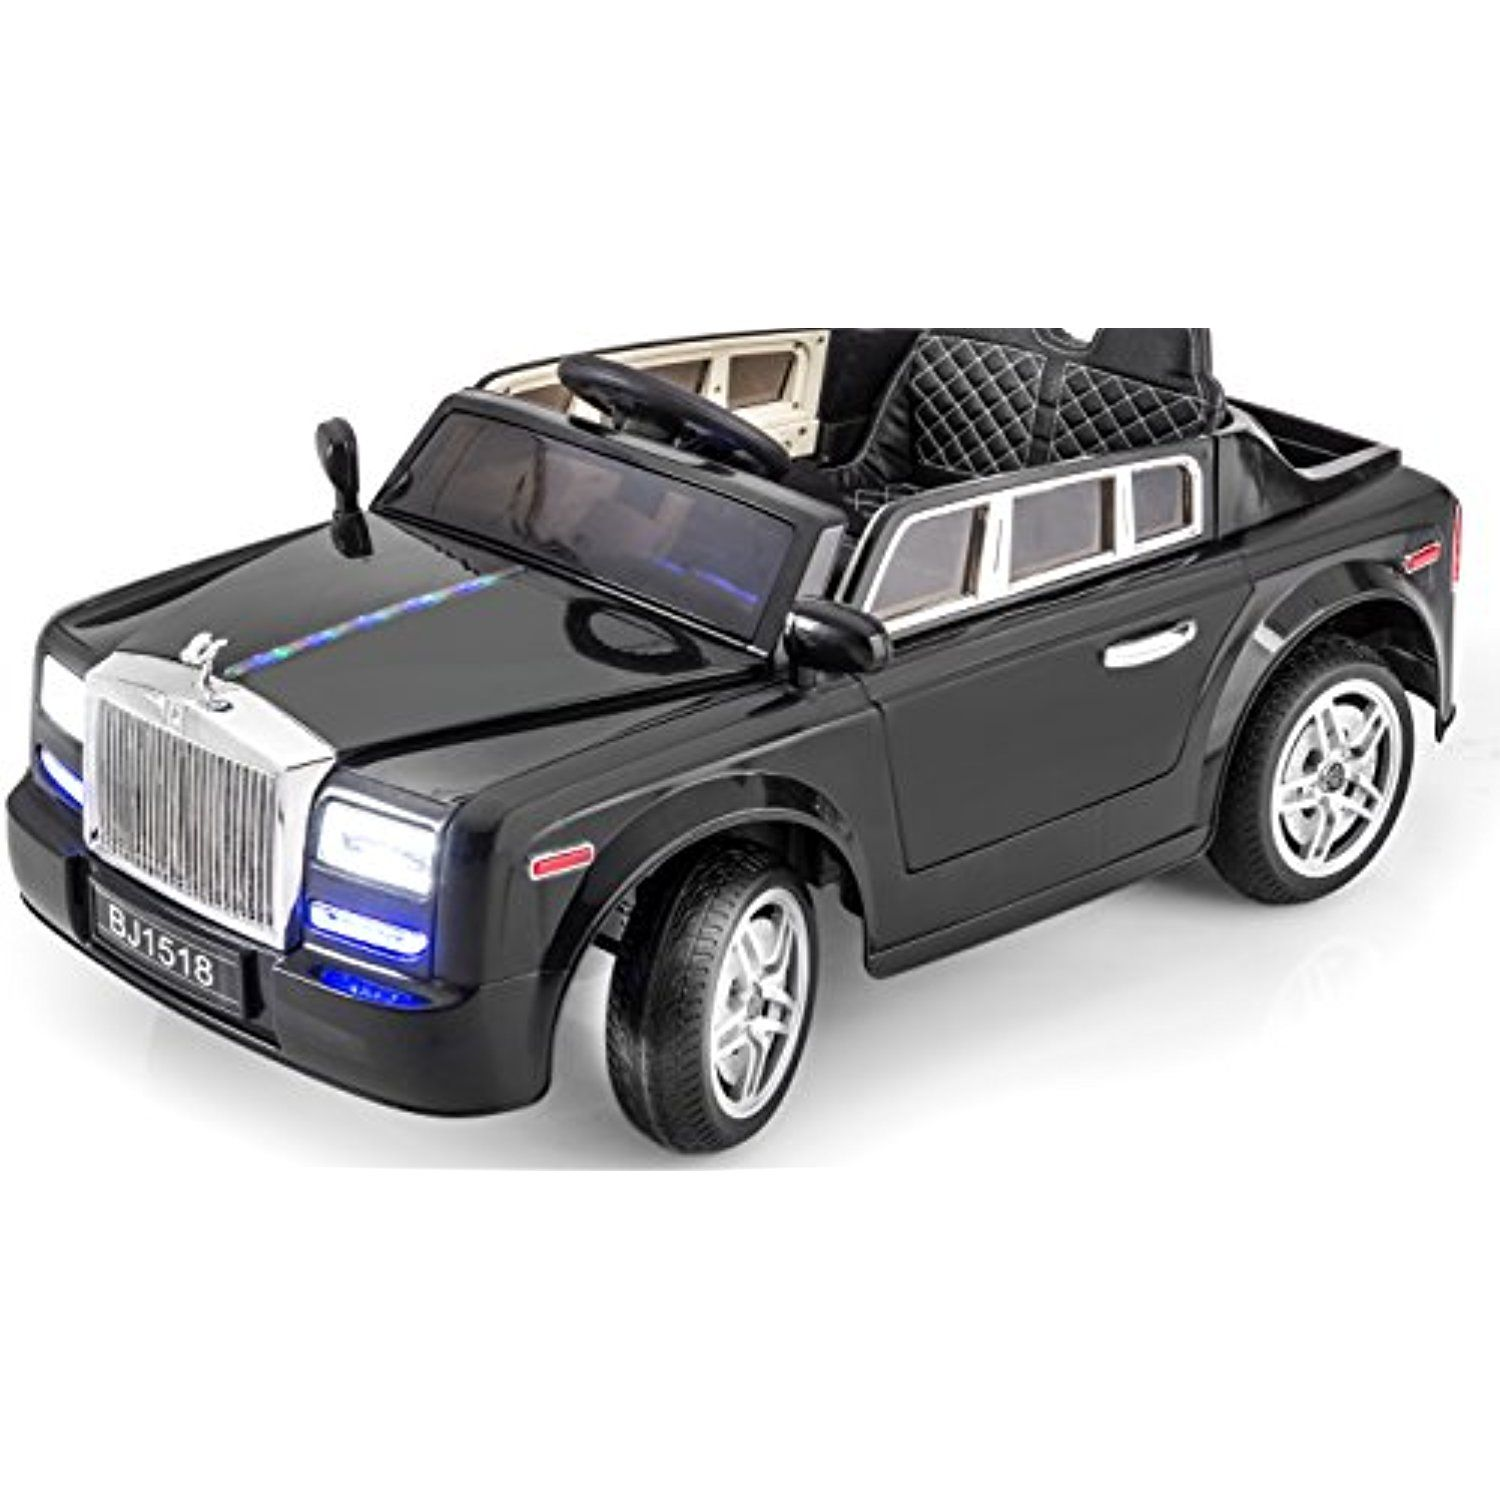 Luxury Super Car Rolls Royce Phantom Style 12v Remote Controled